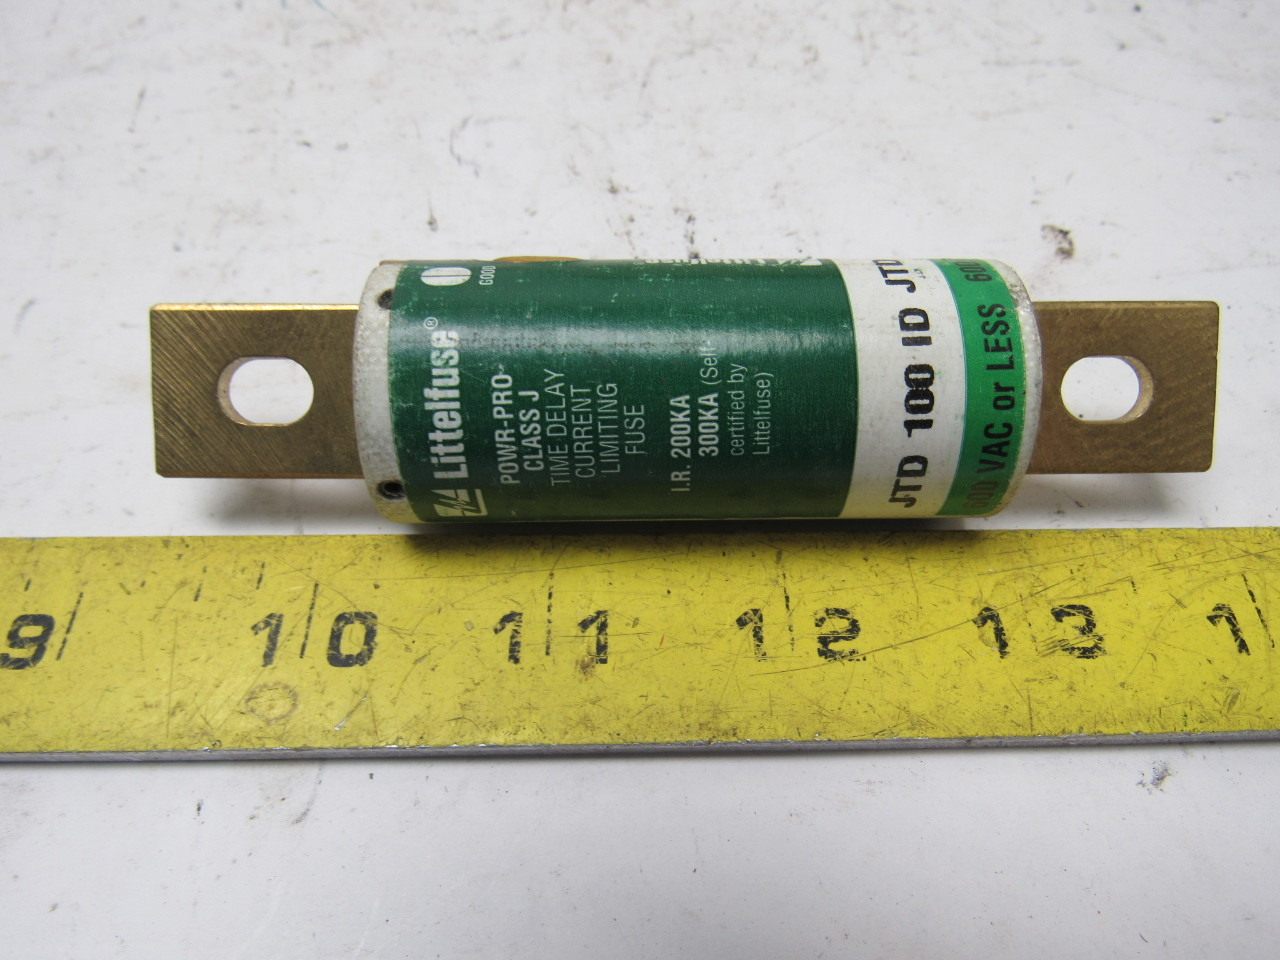 Littelfuse Jtd 100 Id Indicator Time Delay Fuse 100 Amp 600v Class J Lot Of 11